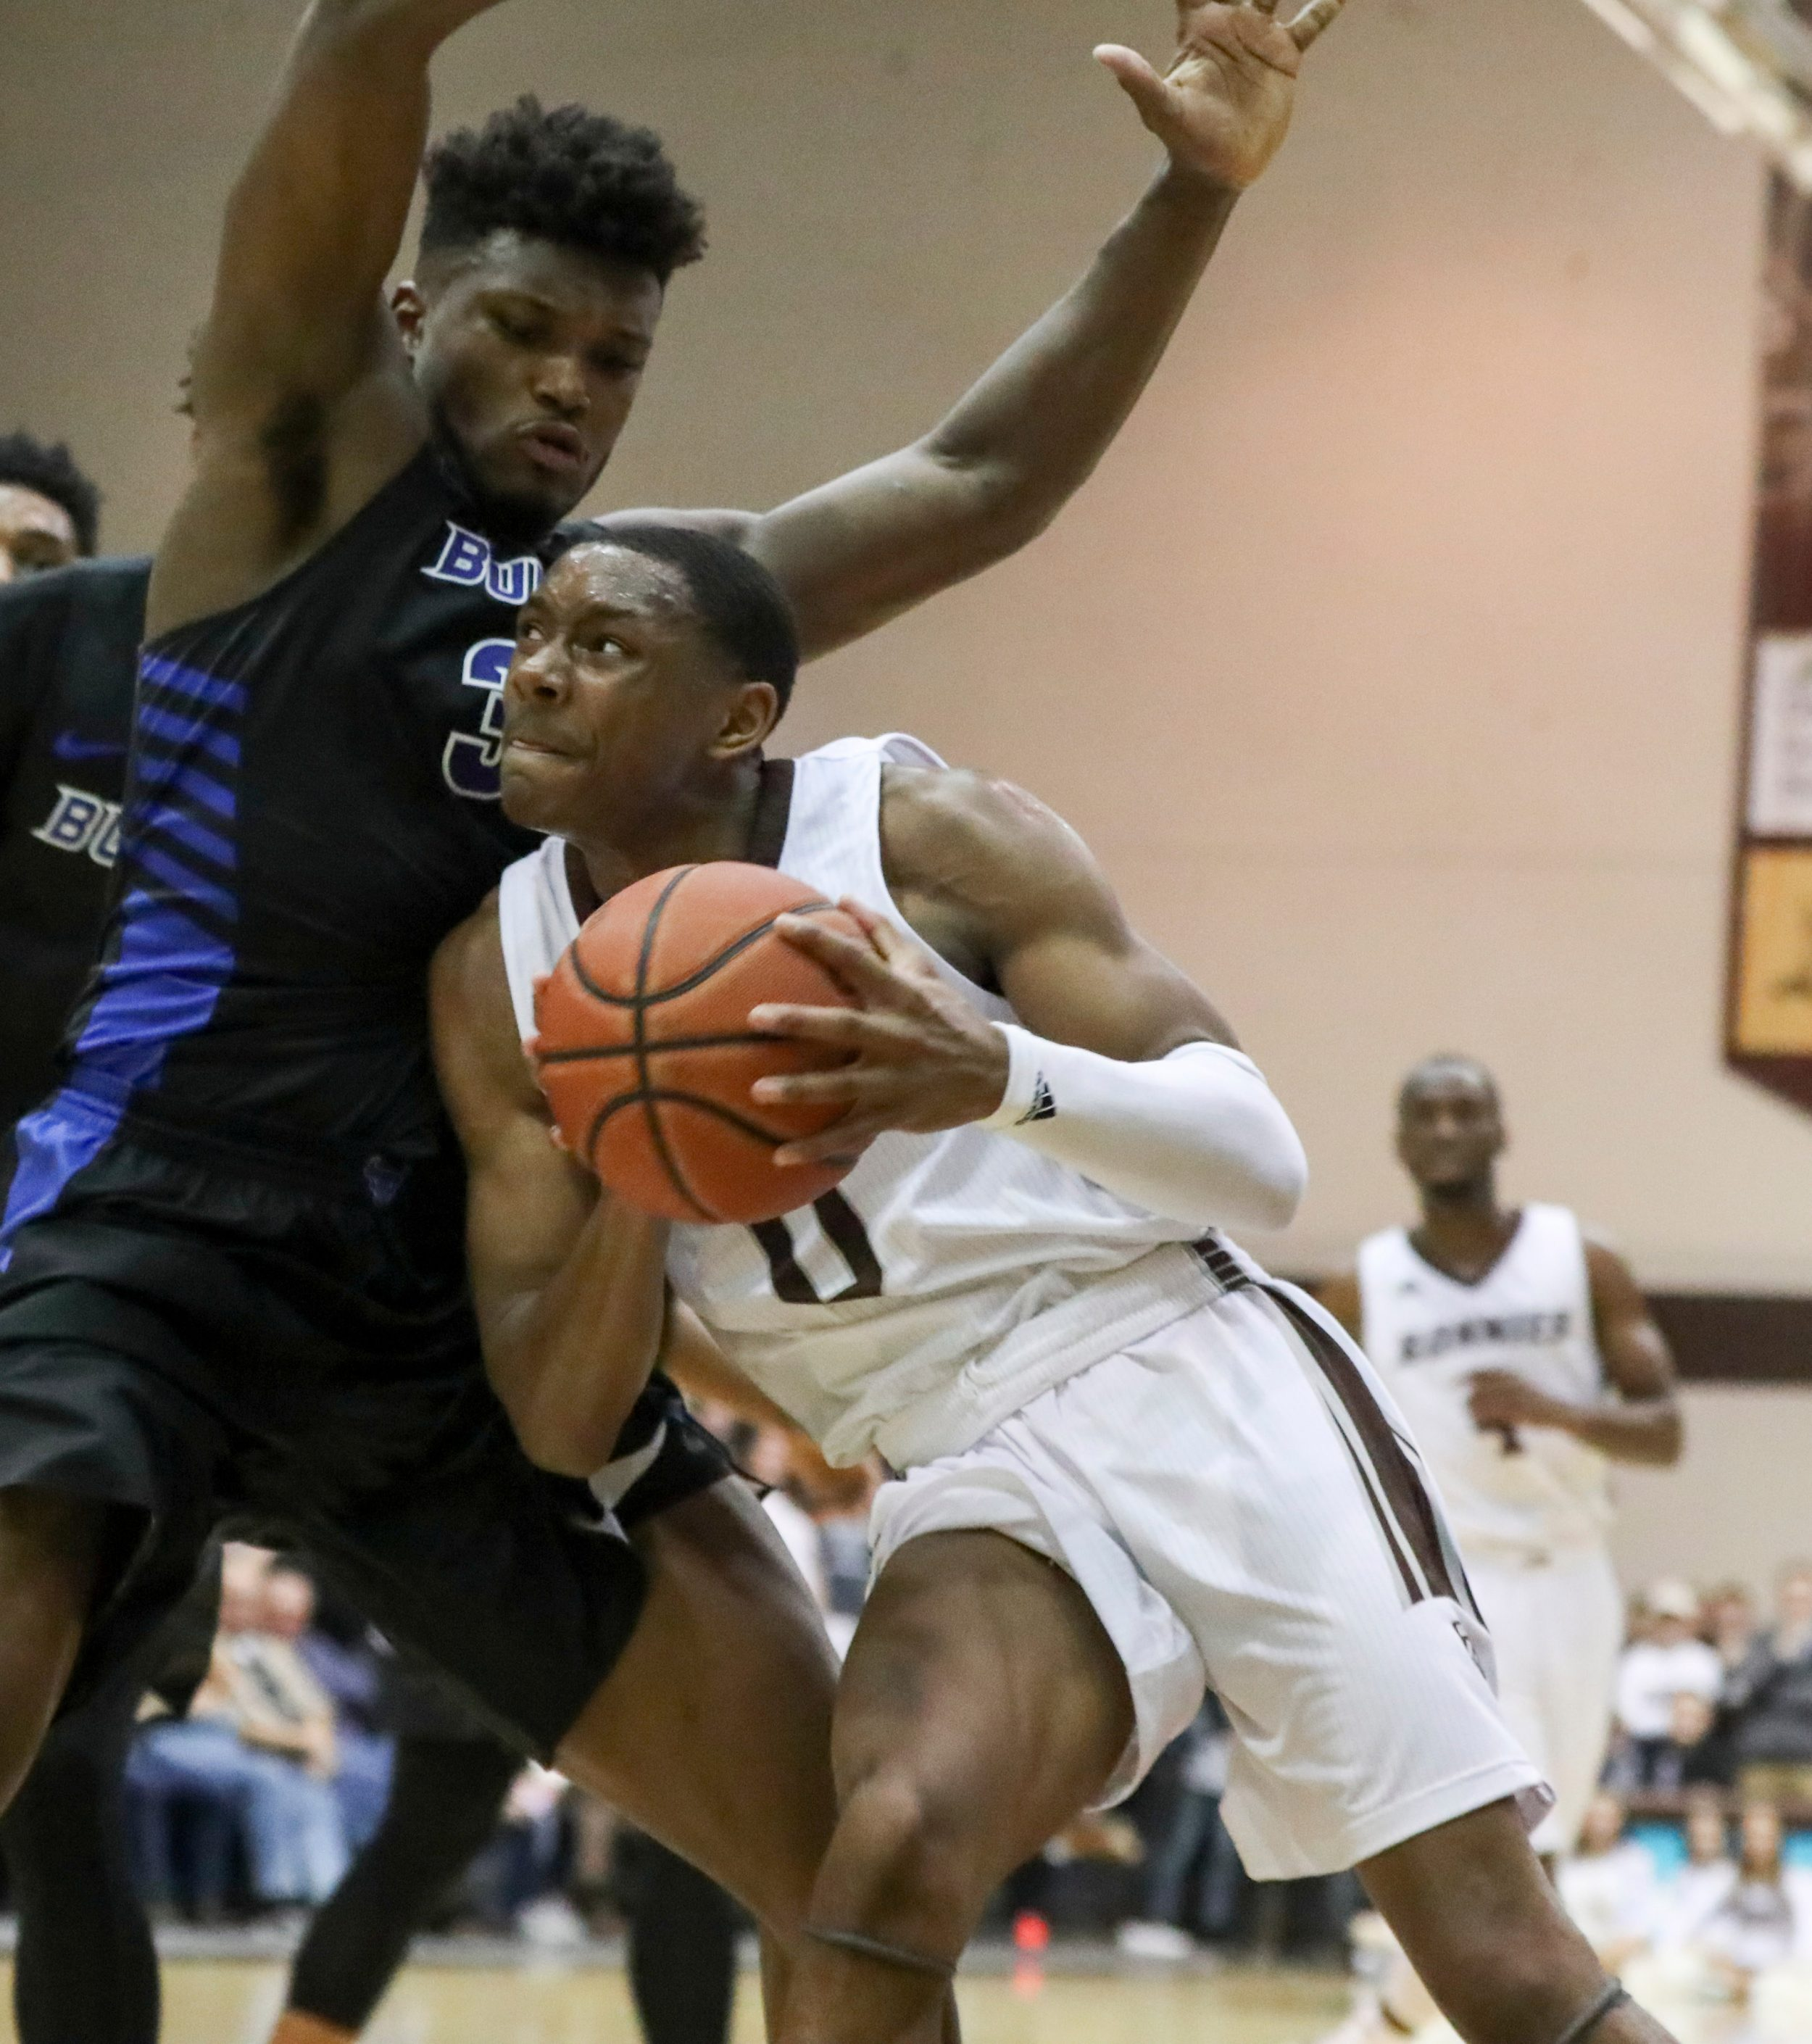 For St  Bonaventure's Kyle Lofton, Osun Osunniyi, 'together again' has